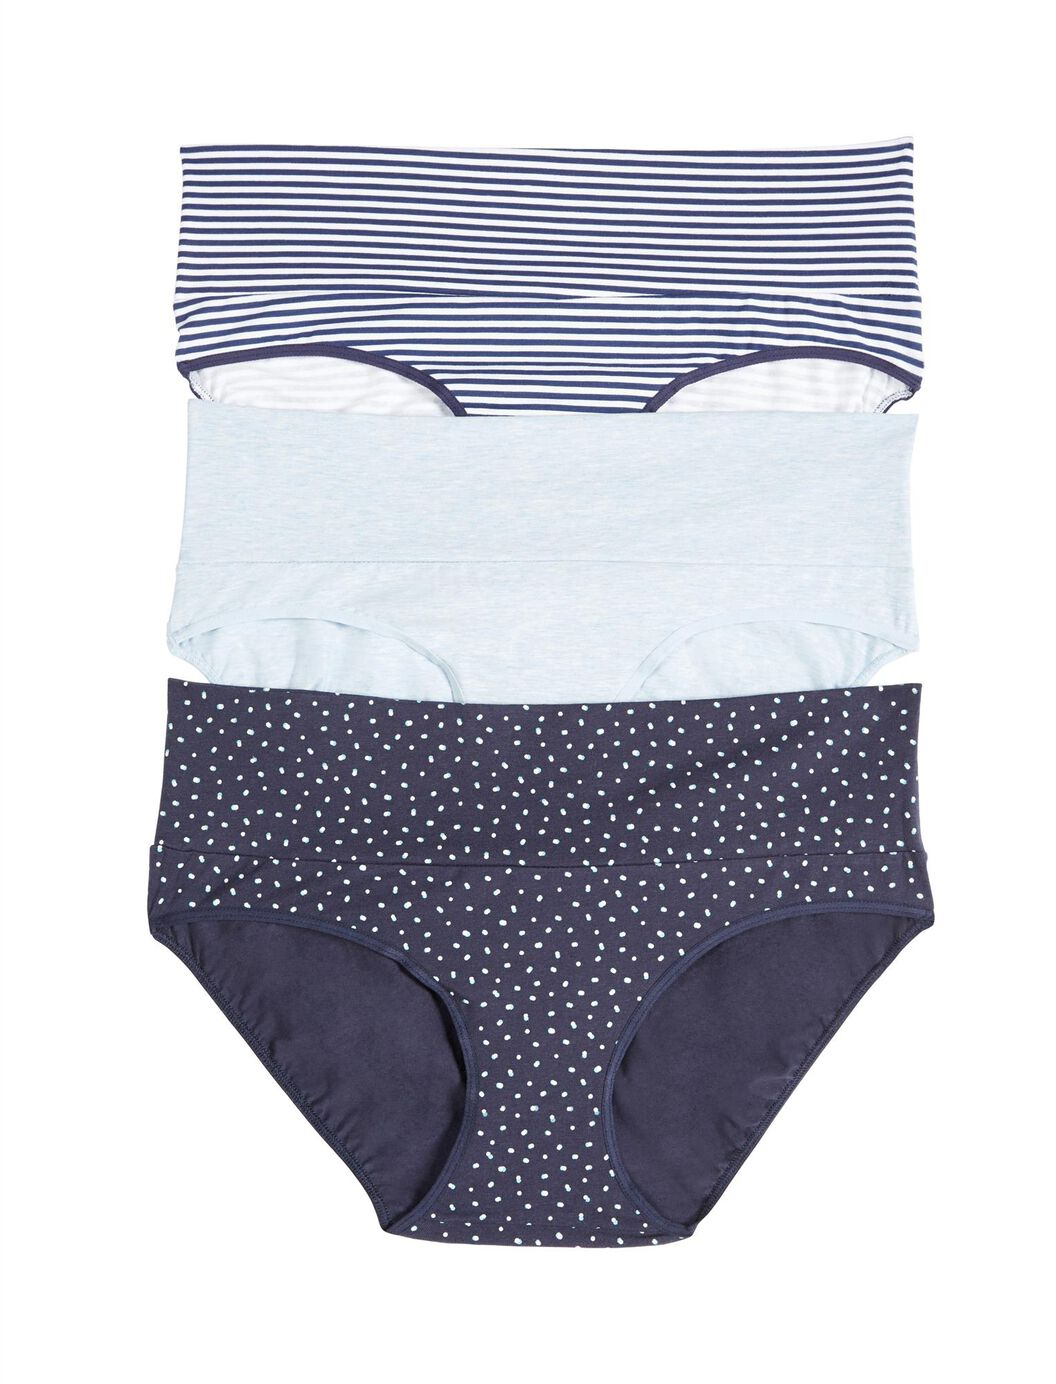 Maternity Fold Over Panties (3 Pack)- Blue Stripe/Dot at Motherhood Maternity in Victor, NY   Tuggl